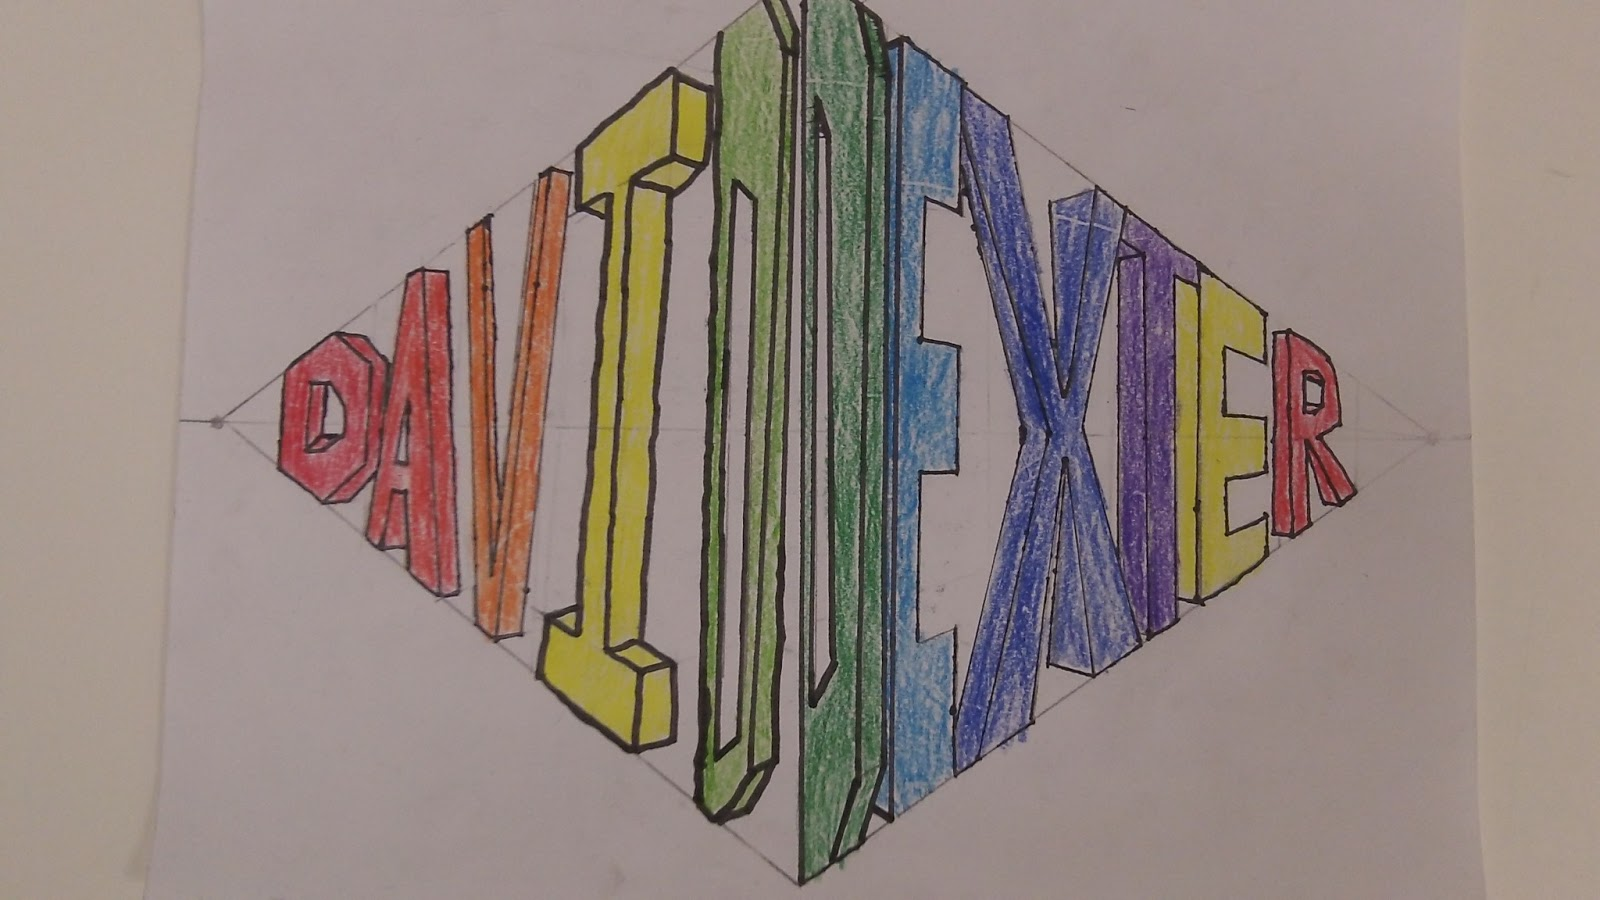 David Art 1 2 Point Perspective Name